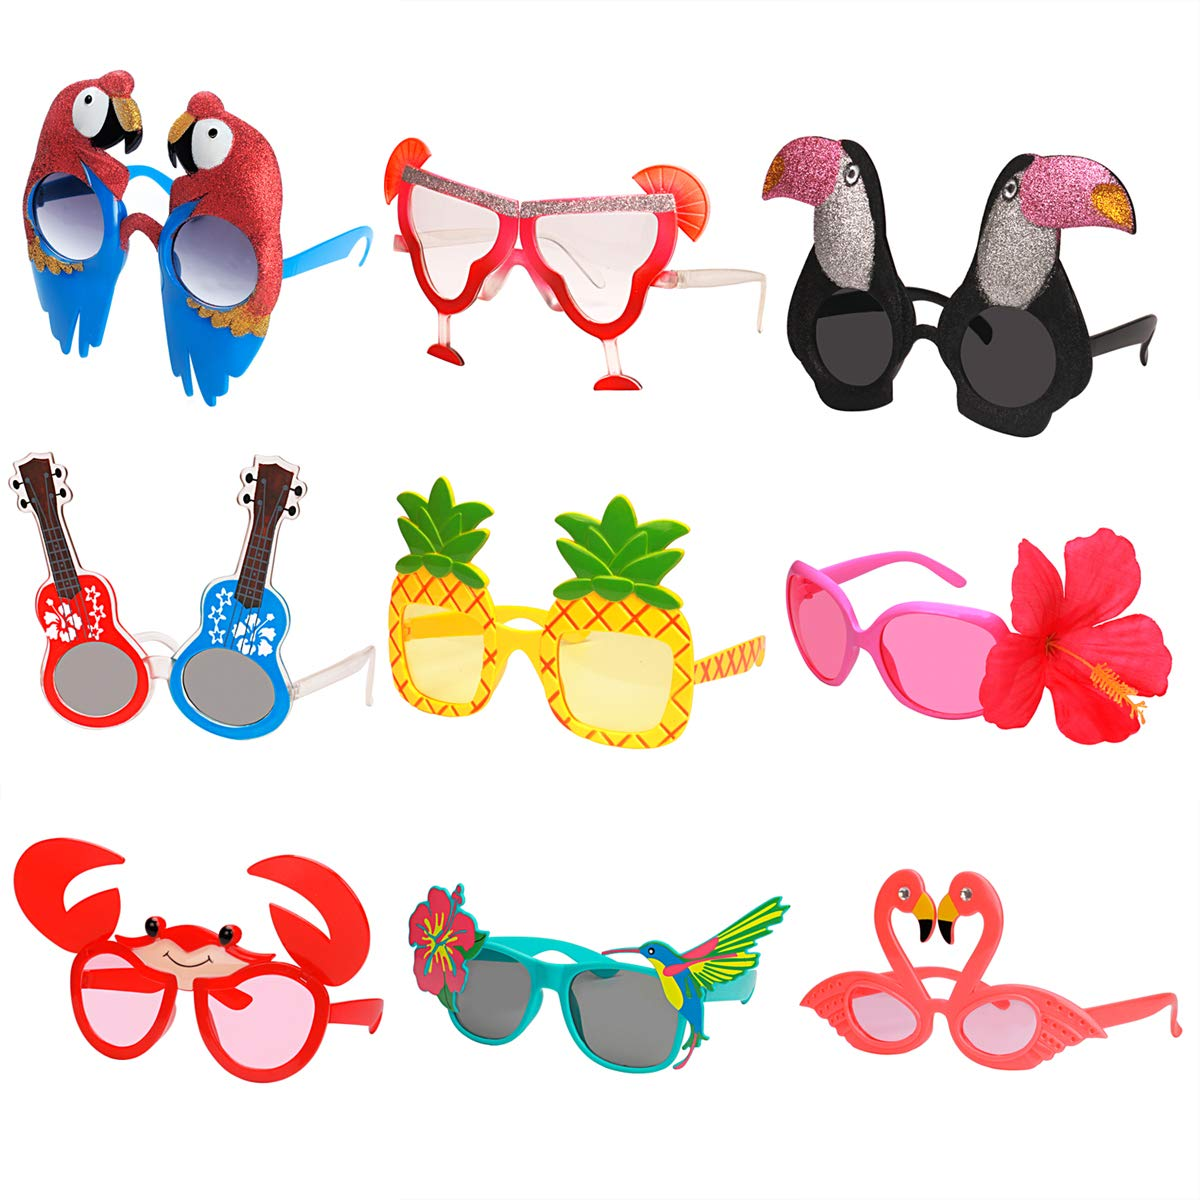 Ocean Line Luau Party Sunglasses - 9 Pairs Funny Hawaiian Glasses, Tropical Fancy Dress Favors, Fun Summer Party Photo Booth Props, Novelty Party Supplies Decoration for Kids and Adults by Ocean Line